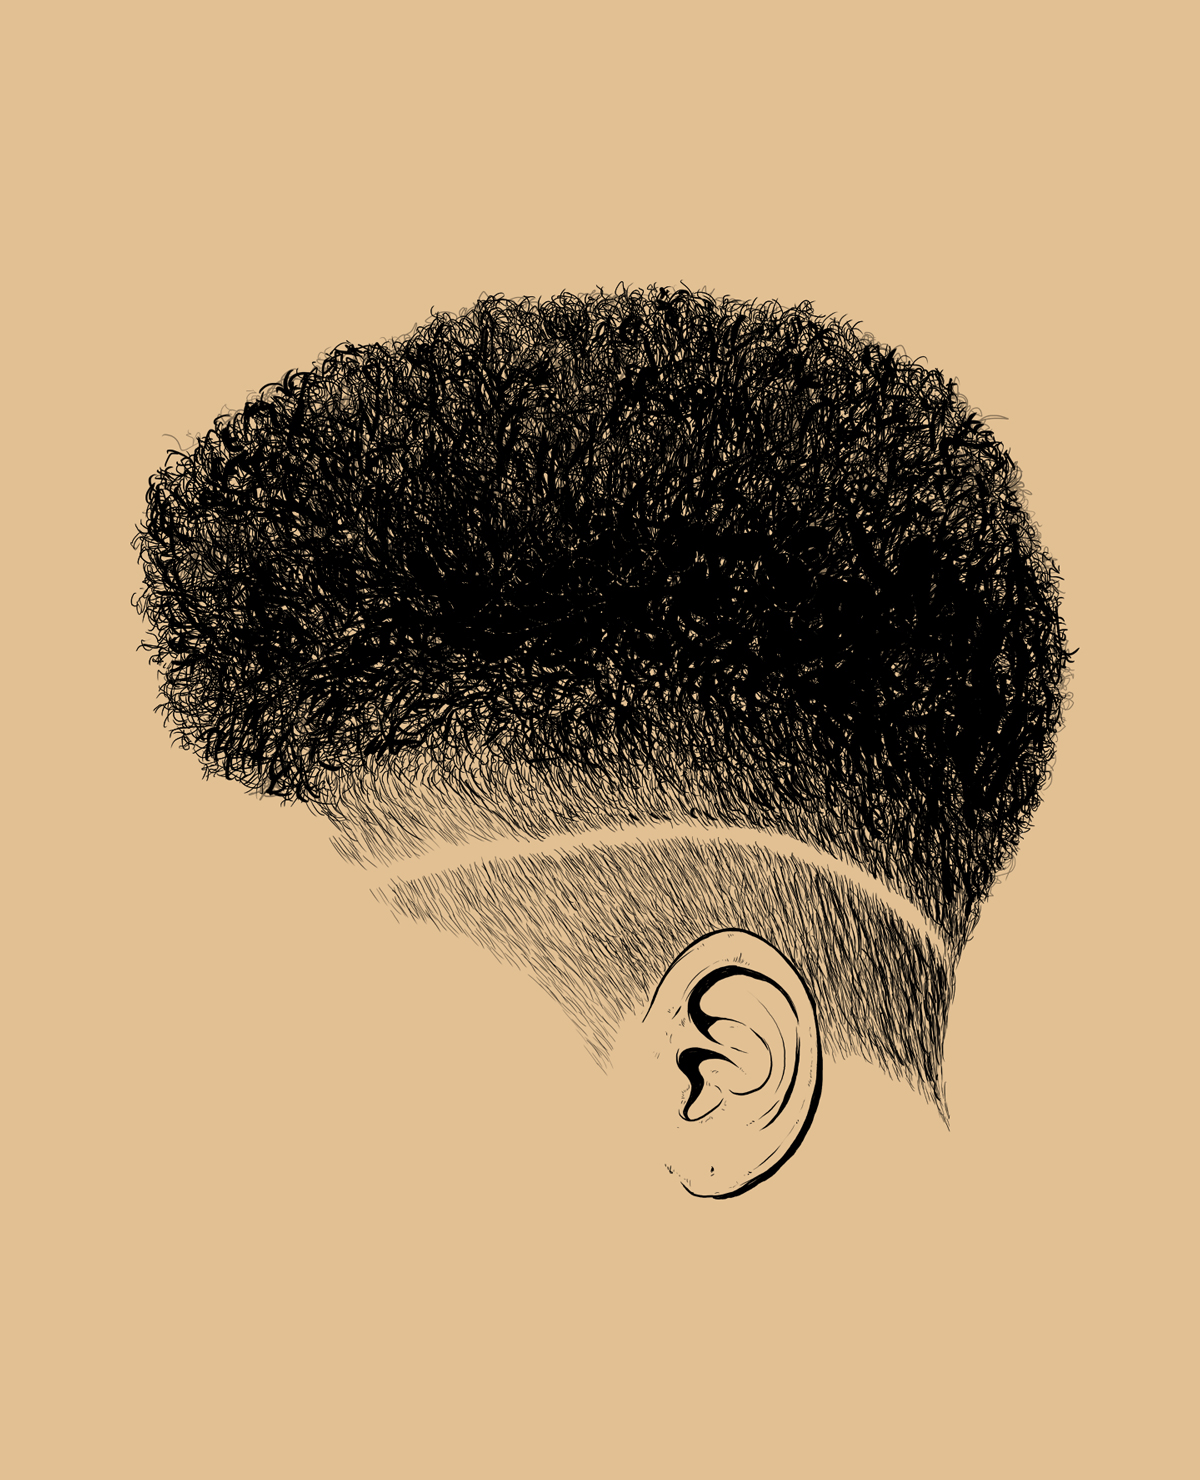 drawing hair, illustration, digital art